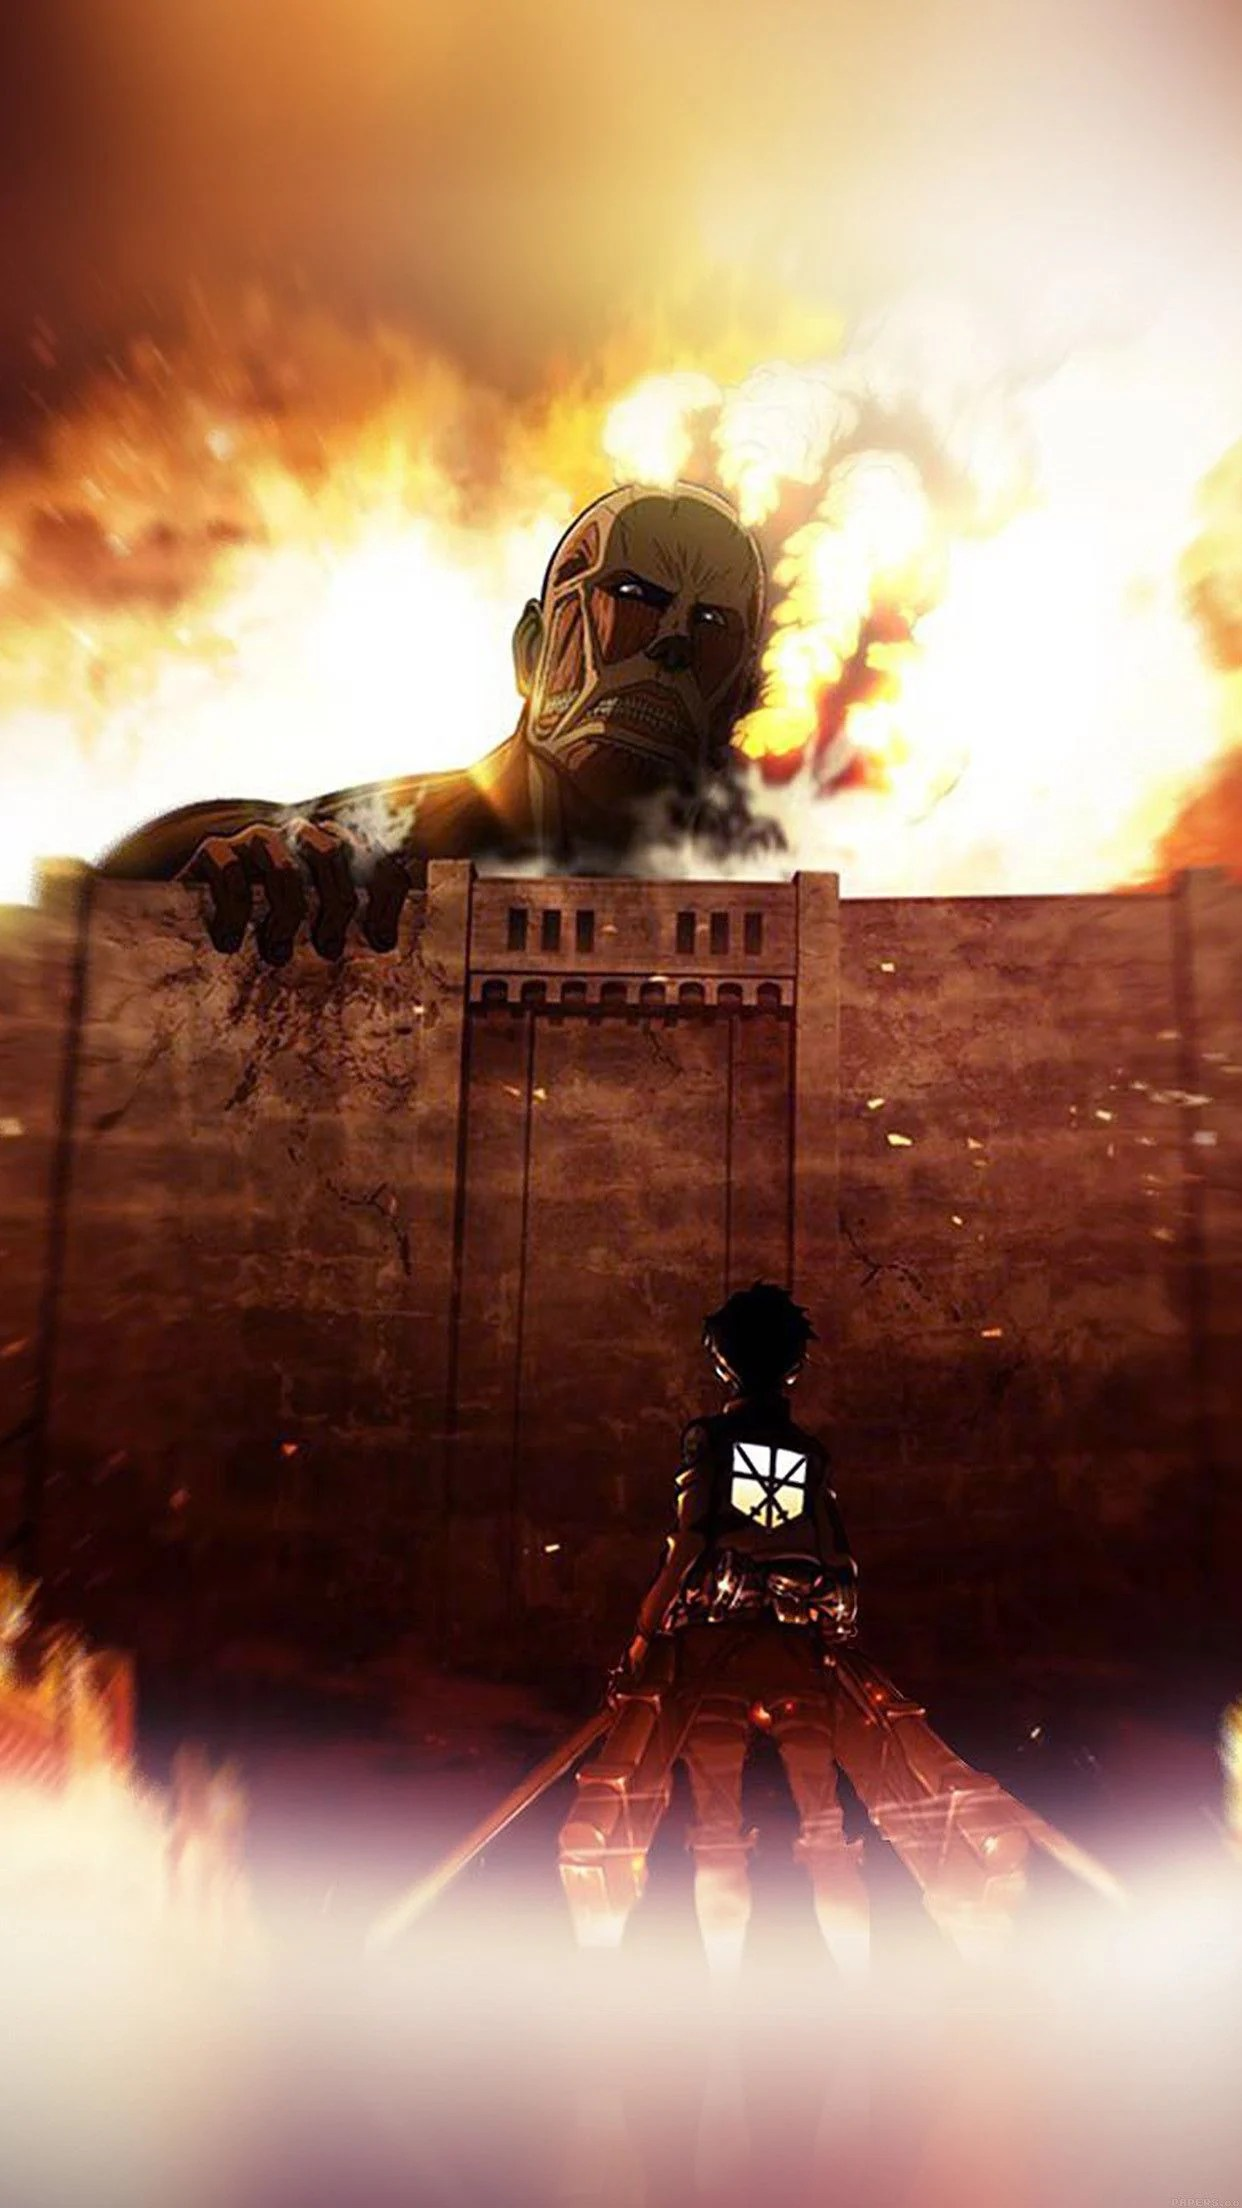 On april 15, 1912, the titanic entered history as one of the most notorious disasters at sea when the unsinkable ship struck an iceberg. Attack On Titan Smartphone Wallpapers - Wallpaper Cave